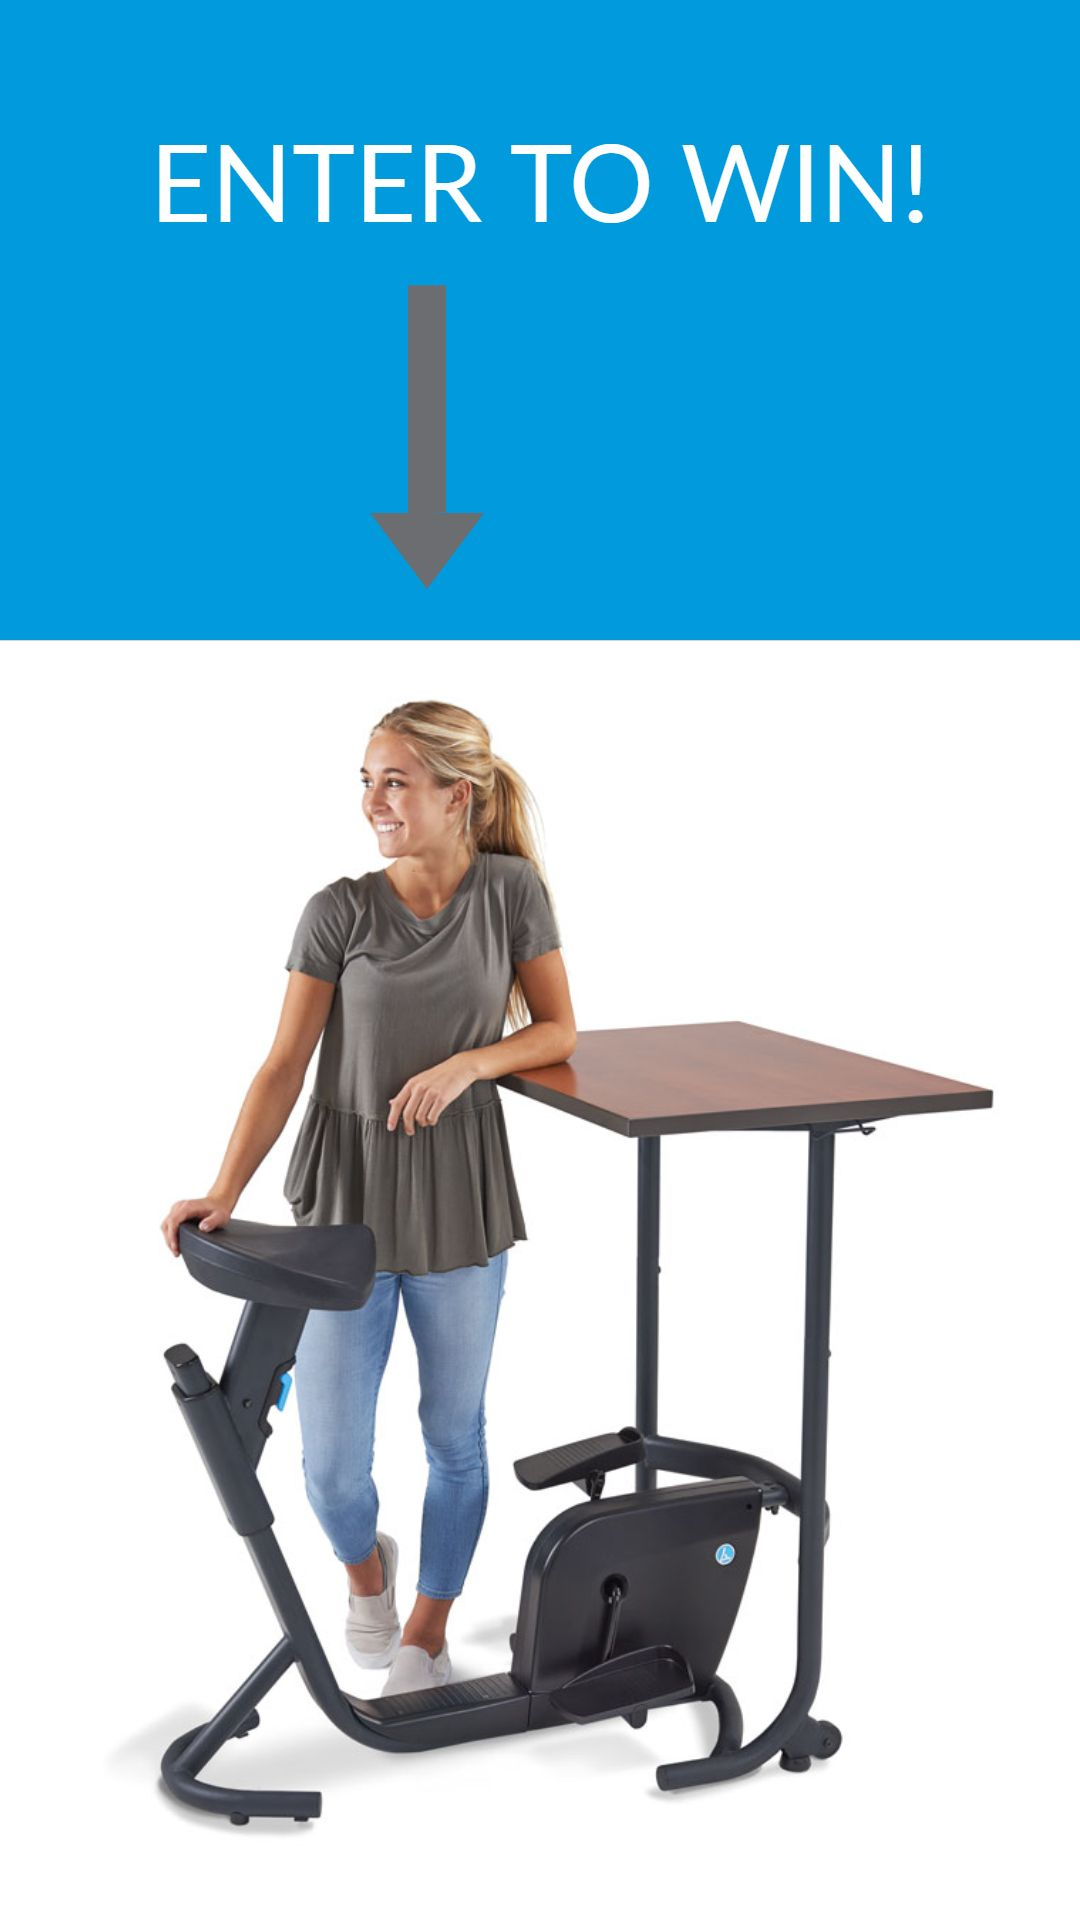 Enter To Win Our Unity Bike Desk Giveaway Entertowin Office